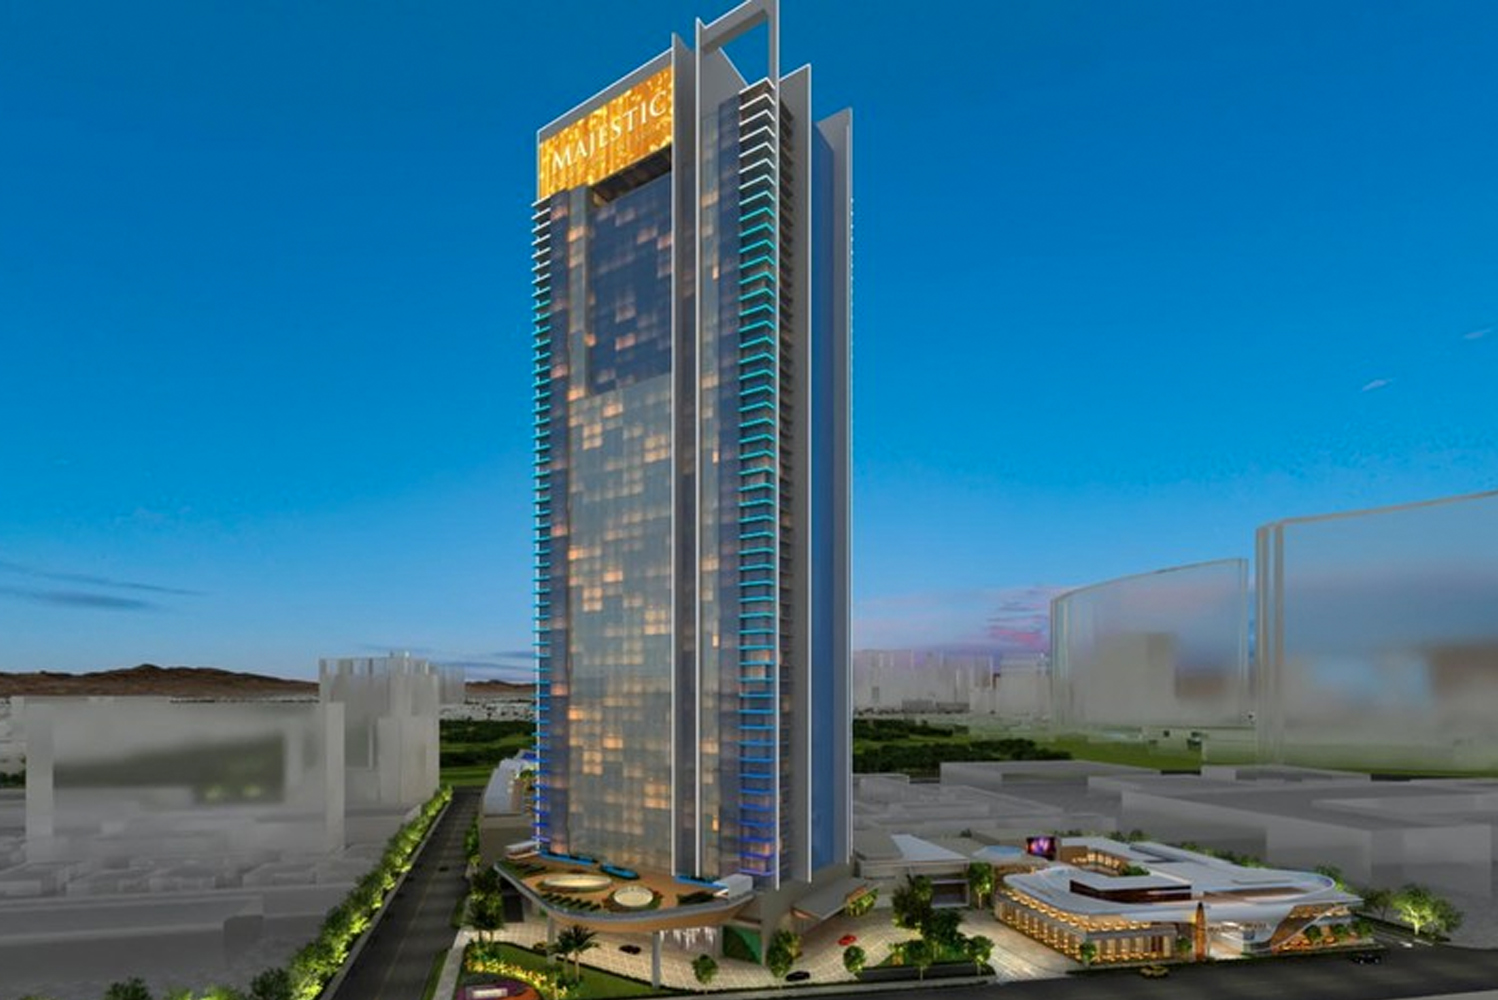 Majestic Las Vegas, the brainchild of Las Vegas developer Lorenzo Doumani, is set to break ground following the project's approval by the Clark County Commissioners.